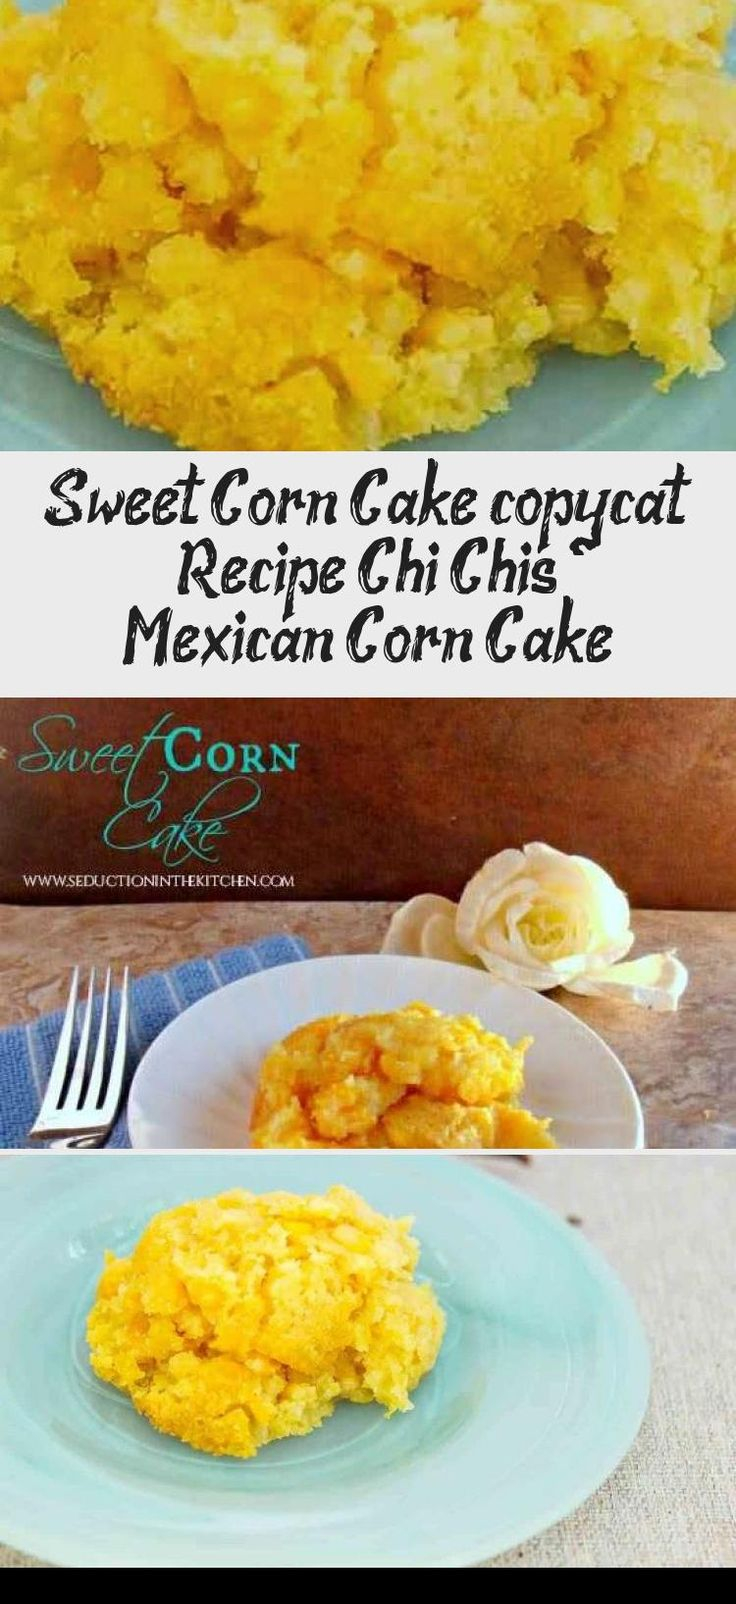 Are you looking for a simple and easy recipe sweet corn